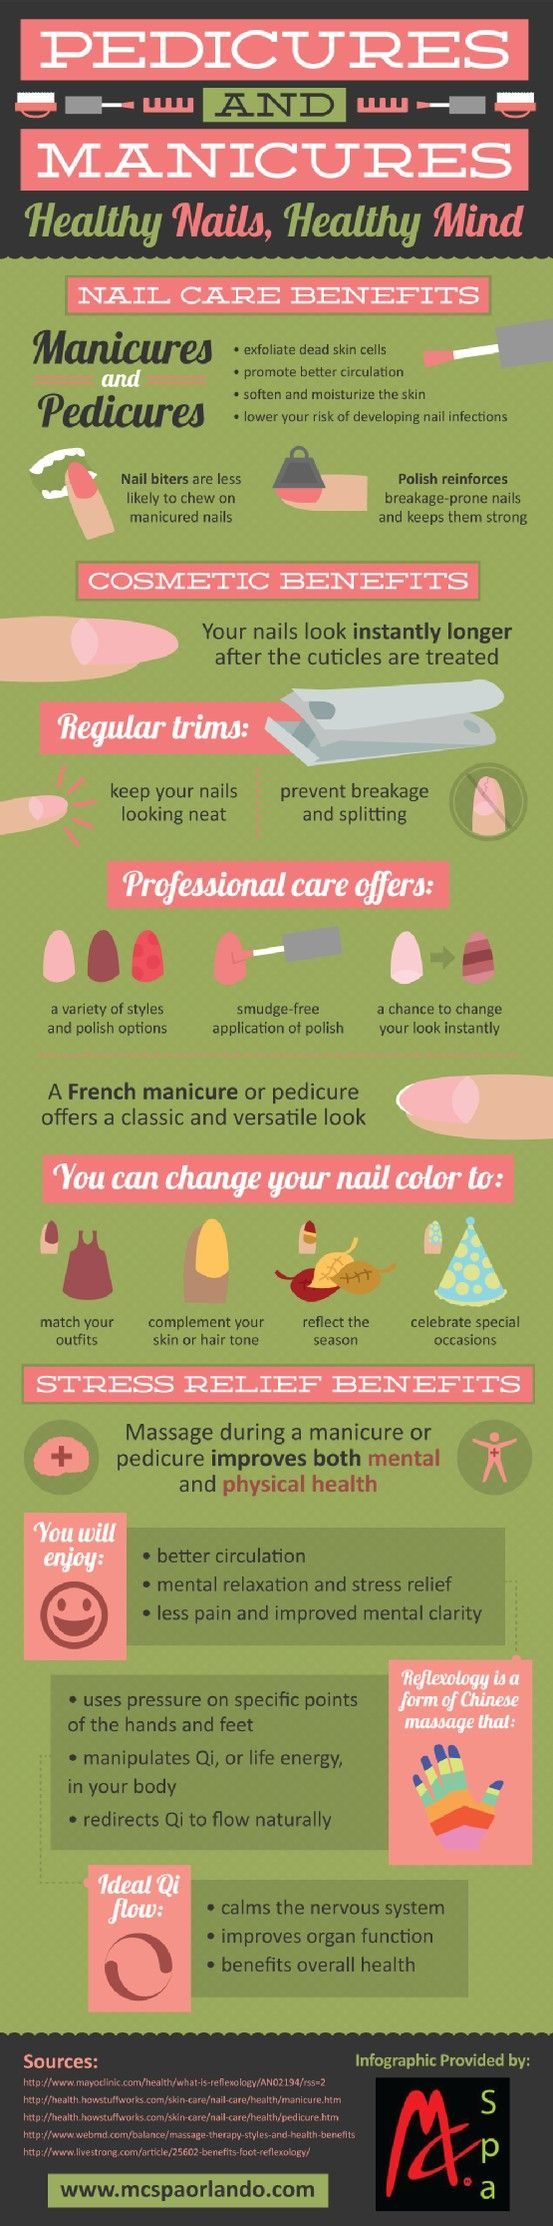 nail-salon-infographic